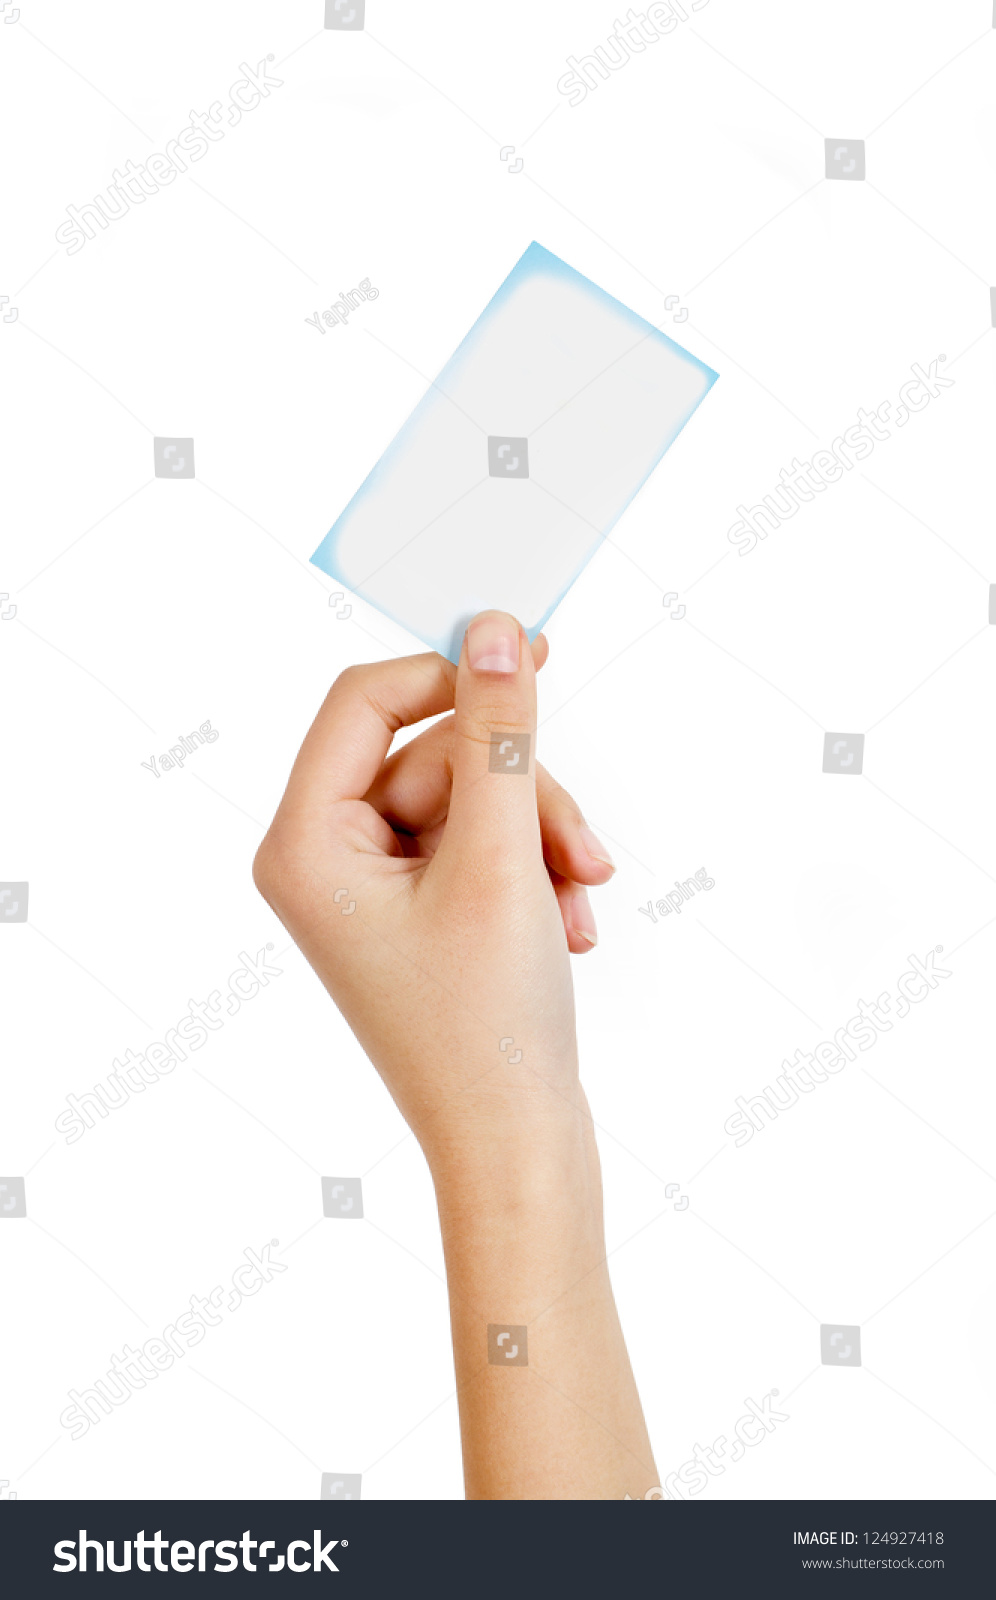 Blank business card in hand choice image card design and card woman handed blank business card hand stock photo 124927418 woman handed blank business card in hand magicingreecefo Choice Image